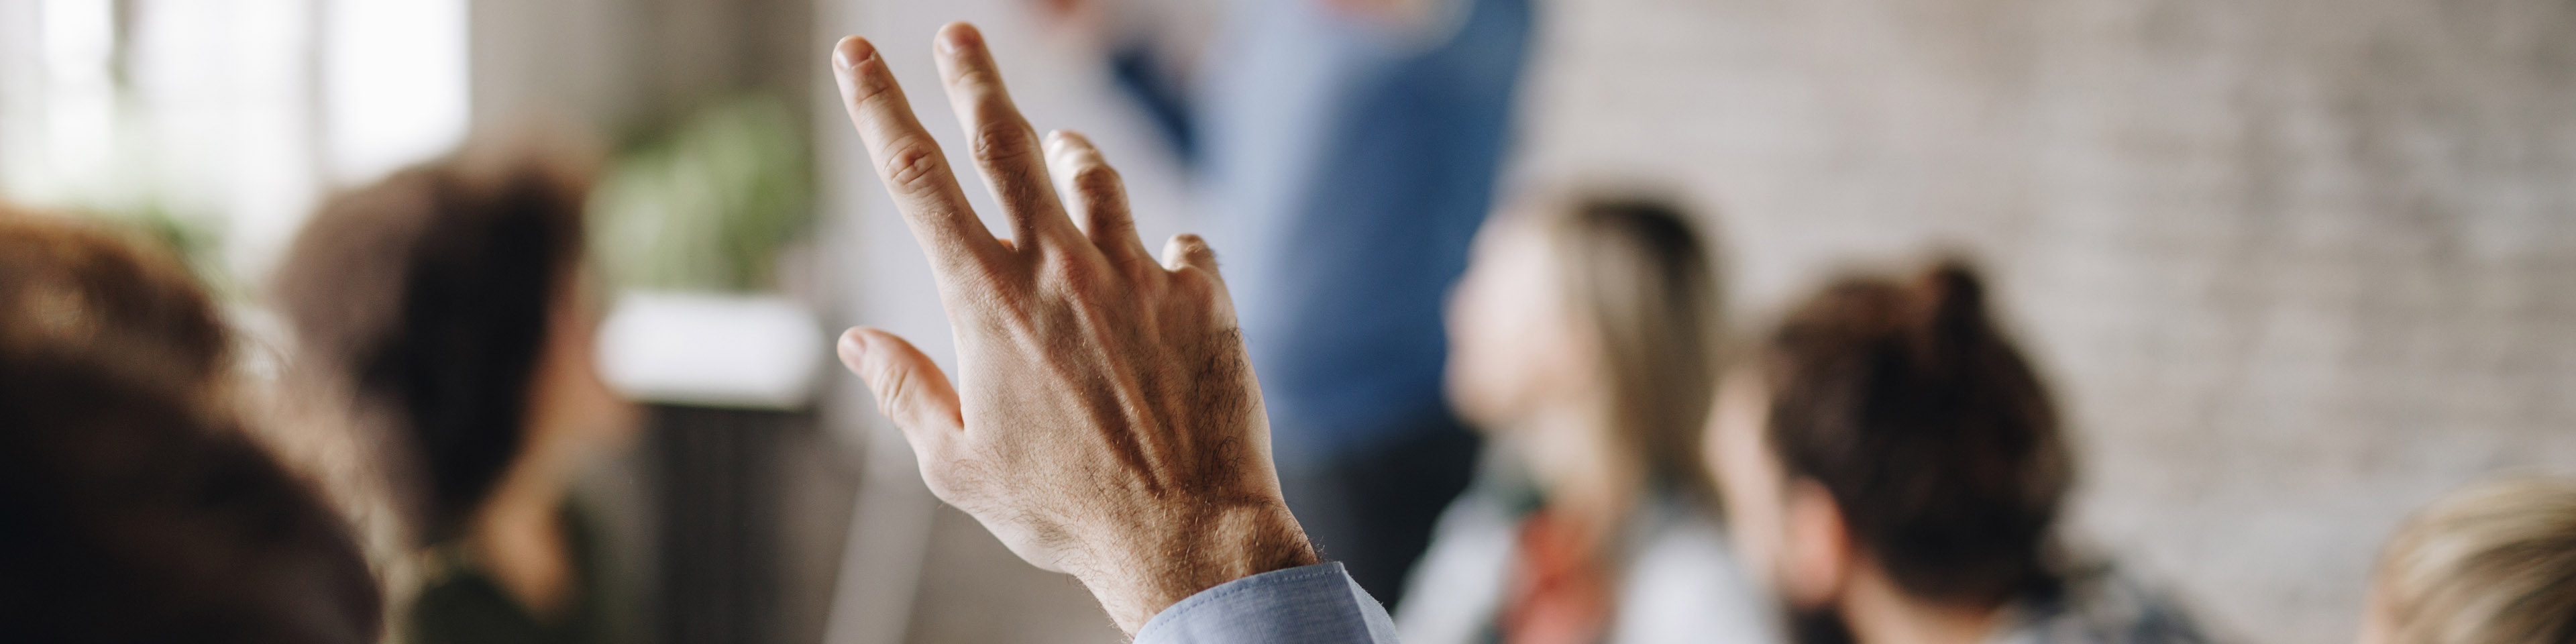 Unrecognizable person raising his hand to ask a question on a business meeting in the office.